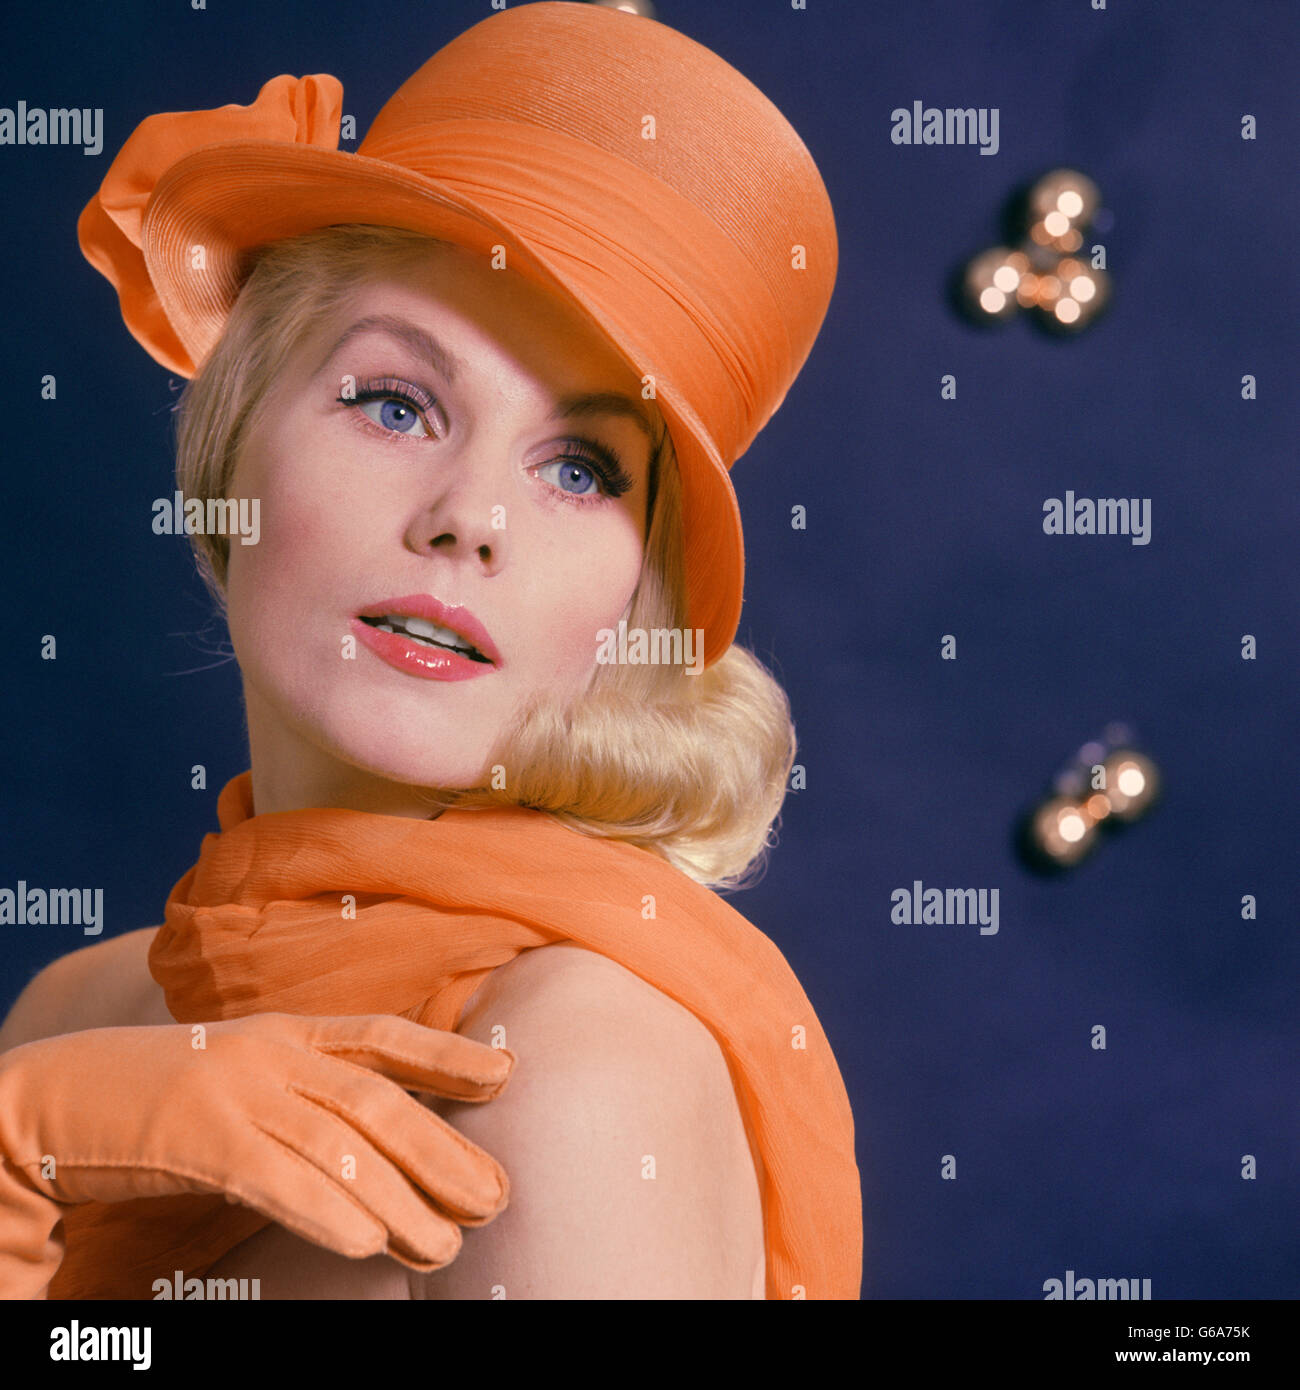 1960s FASHIONABLE BLOND BLUE EYED WOMAN MODEL WEARING AN ORANGE HAT WITH MATCHING SCARF AND GLOVES Stock Photo